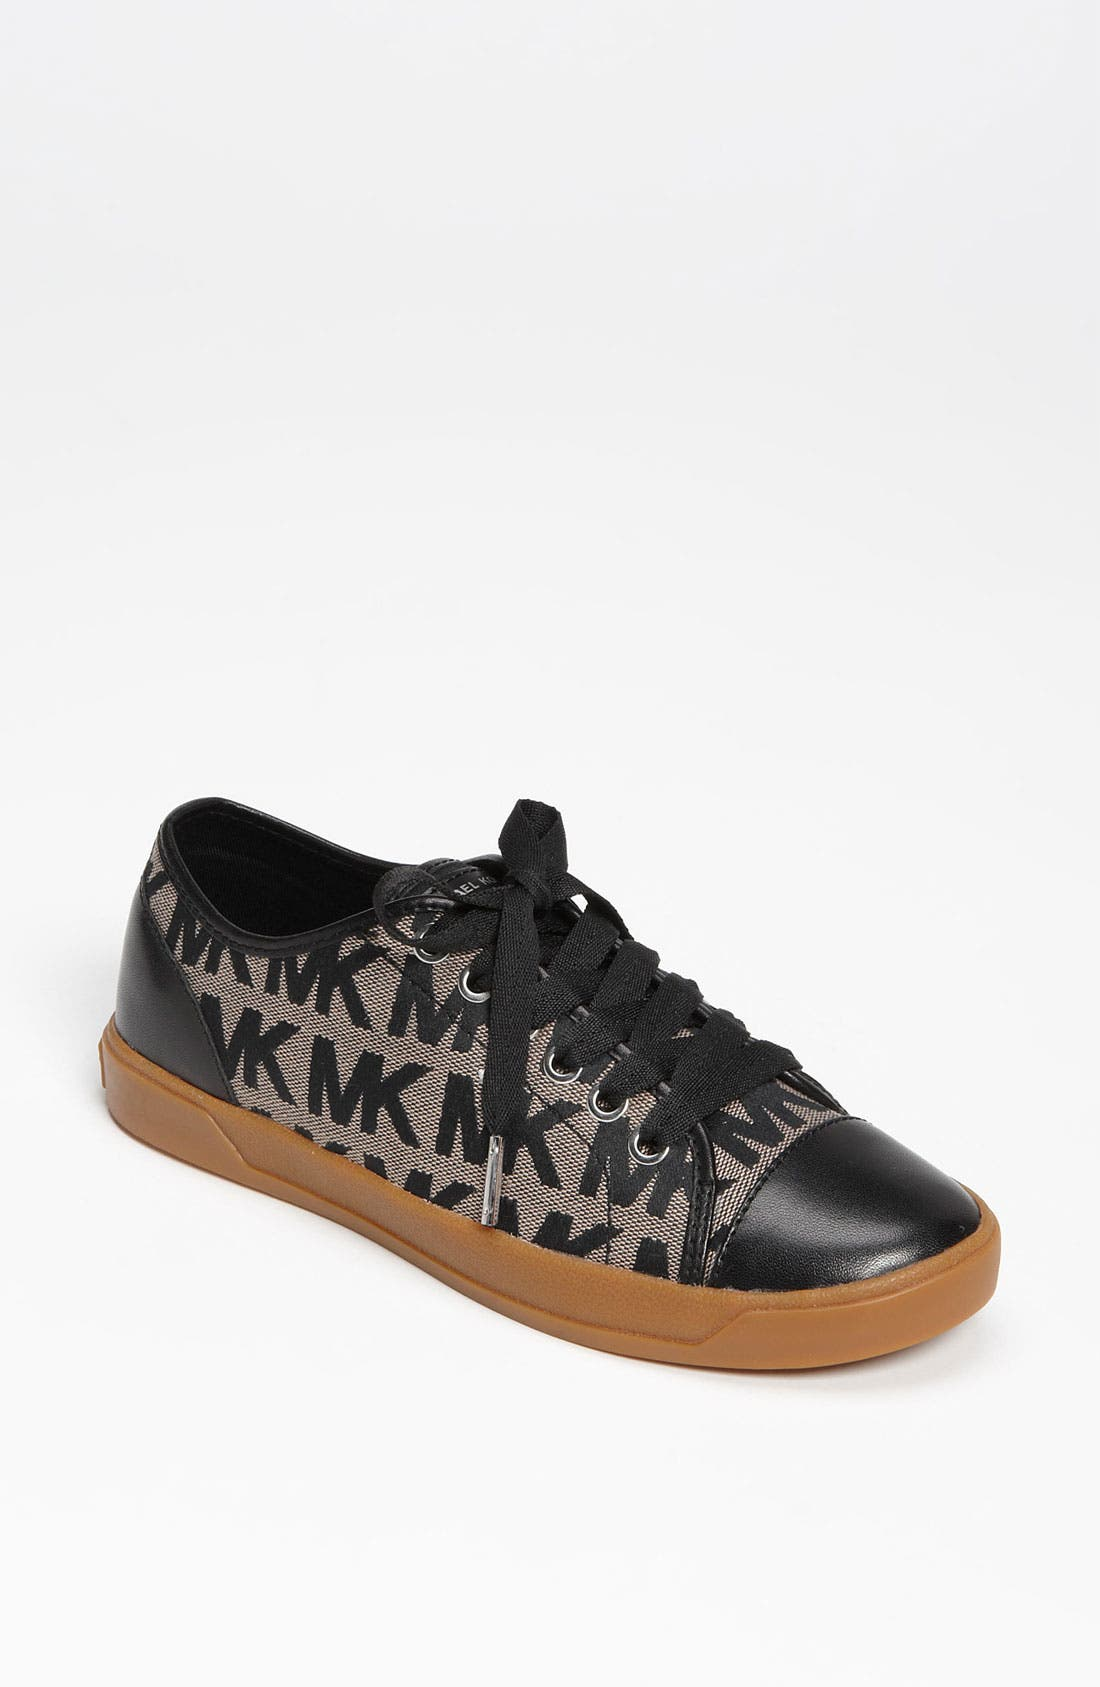 Alternate Image 1 Selected - MICHAEL Michael Kors 'City' Sneaker